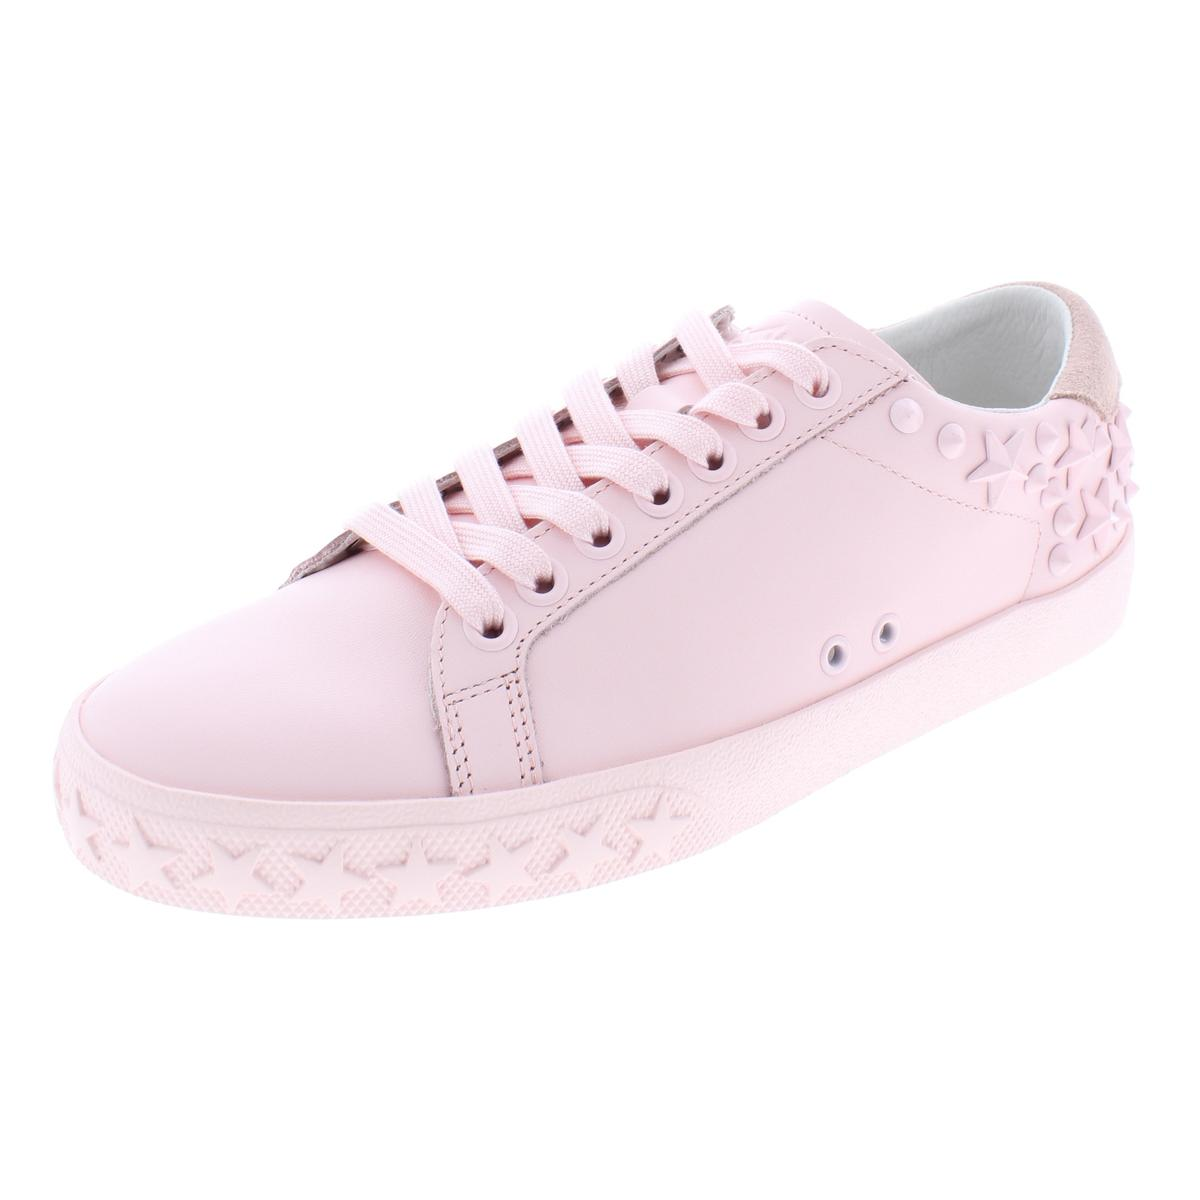 83d4728c27c9 Details about ASH Womens Dazed Leather Studded Fashion Casual Shoes Sneakers  BHFO 8343